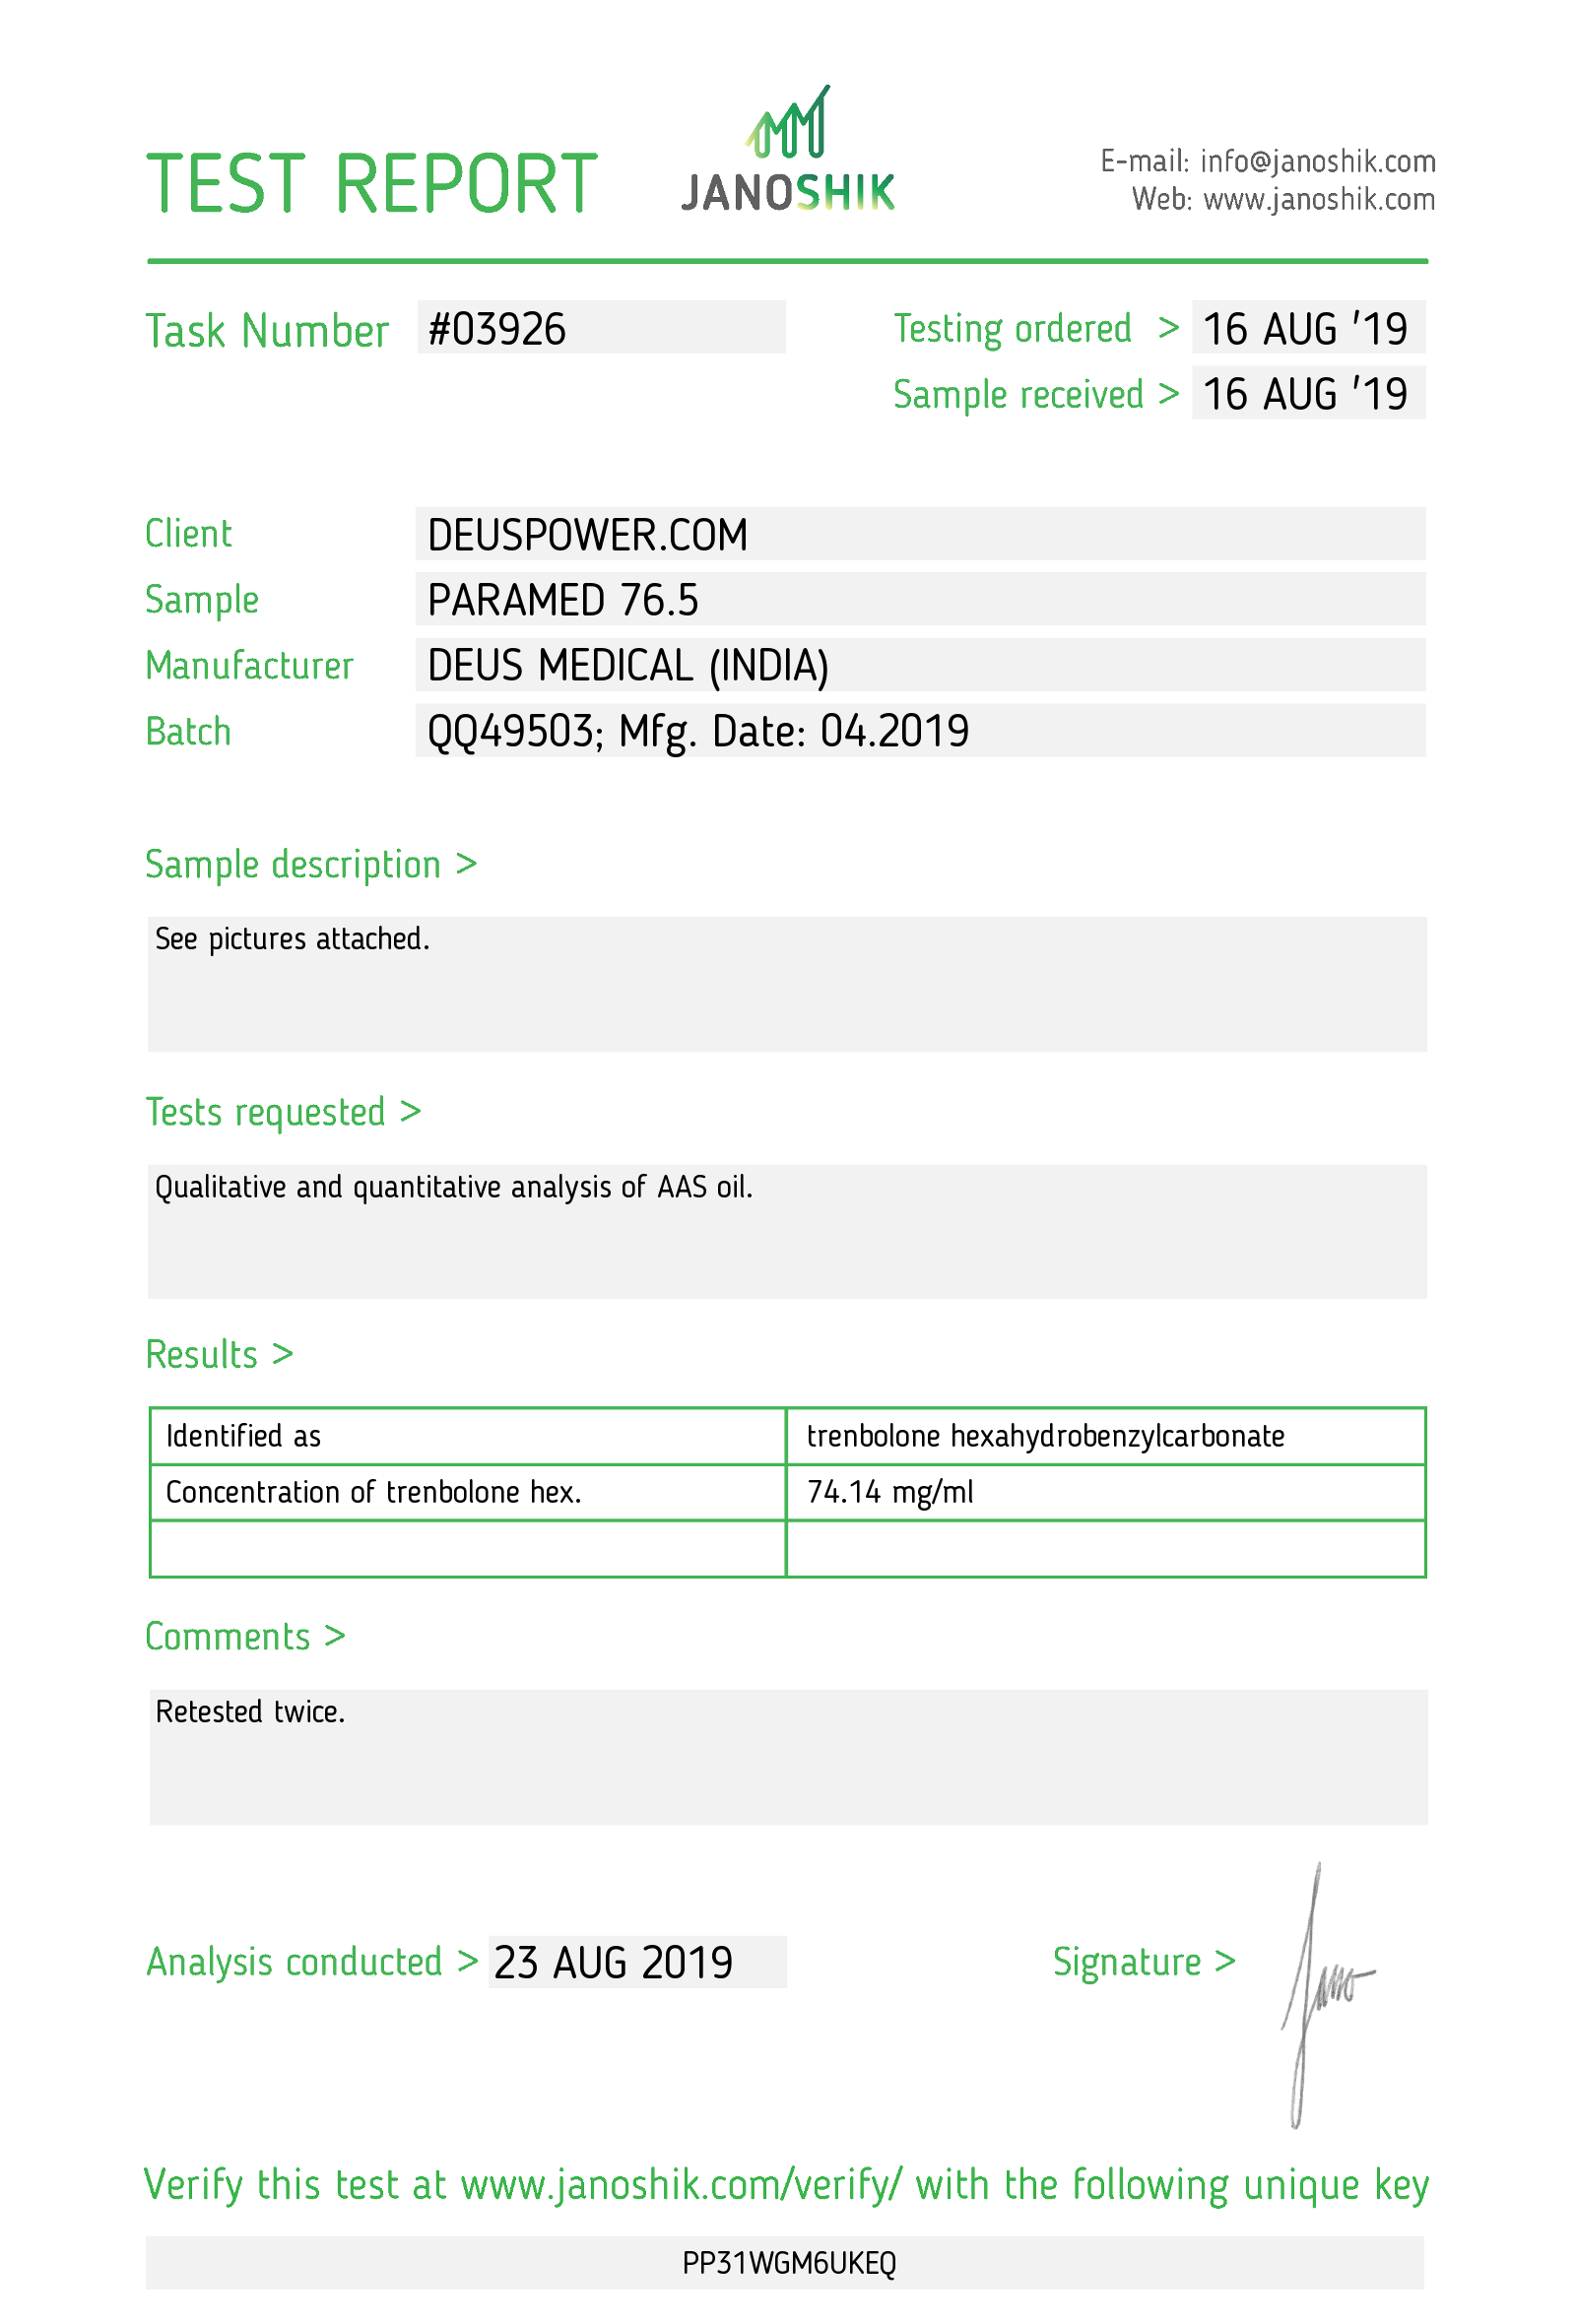 Laboratory Test for Deus Medical PARAMED 76.5_Test Report.png